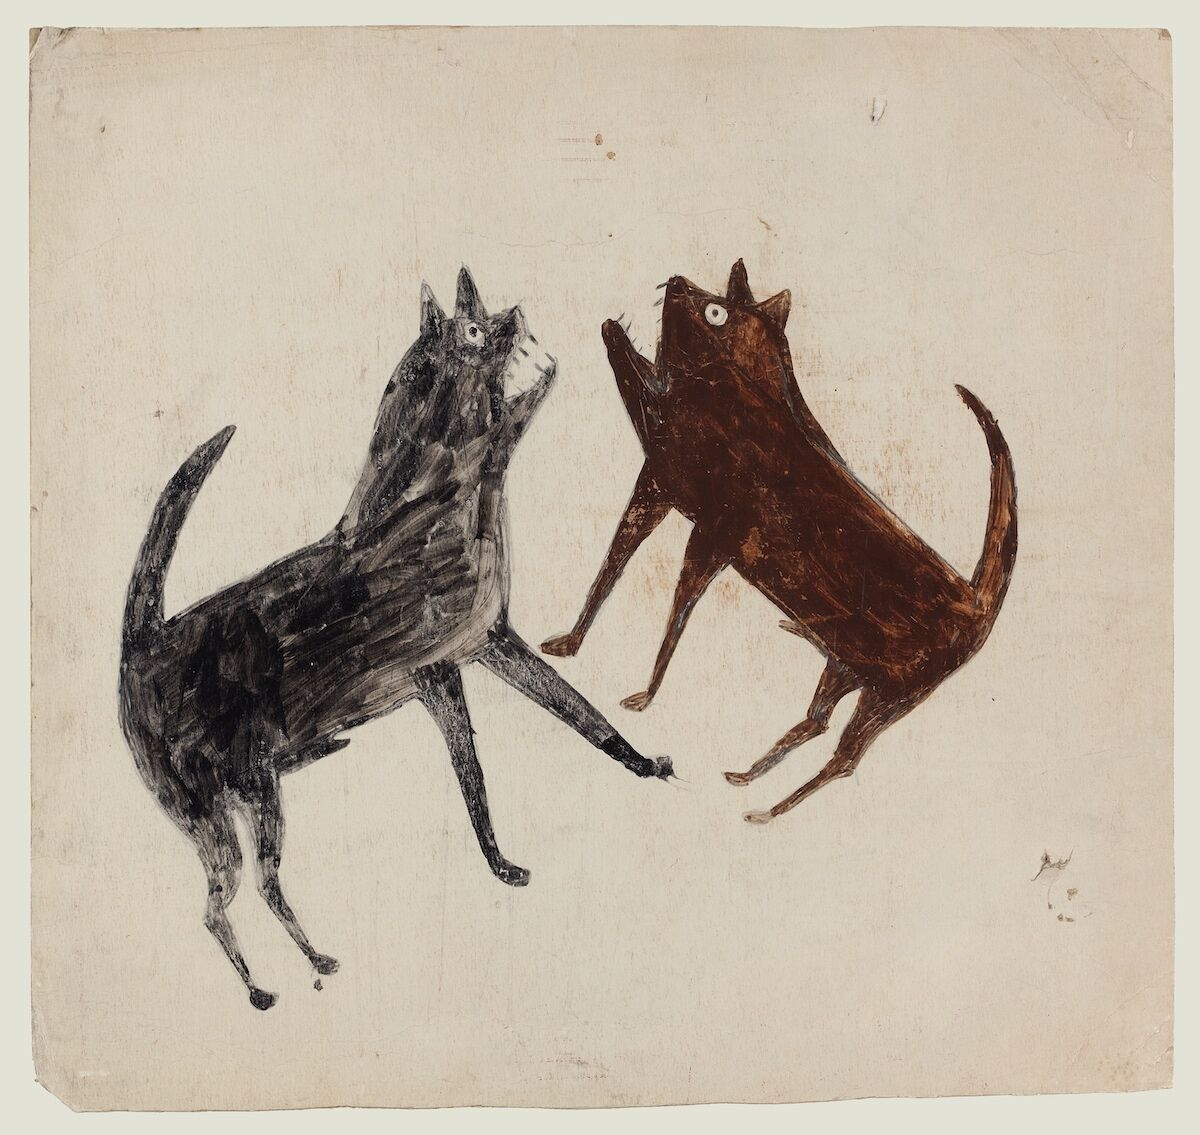 Bill Traylor, Fighting Dogs, 1939–42, tempera and graphite on card, est. $50,000–80,000. Courtesy Christie's.